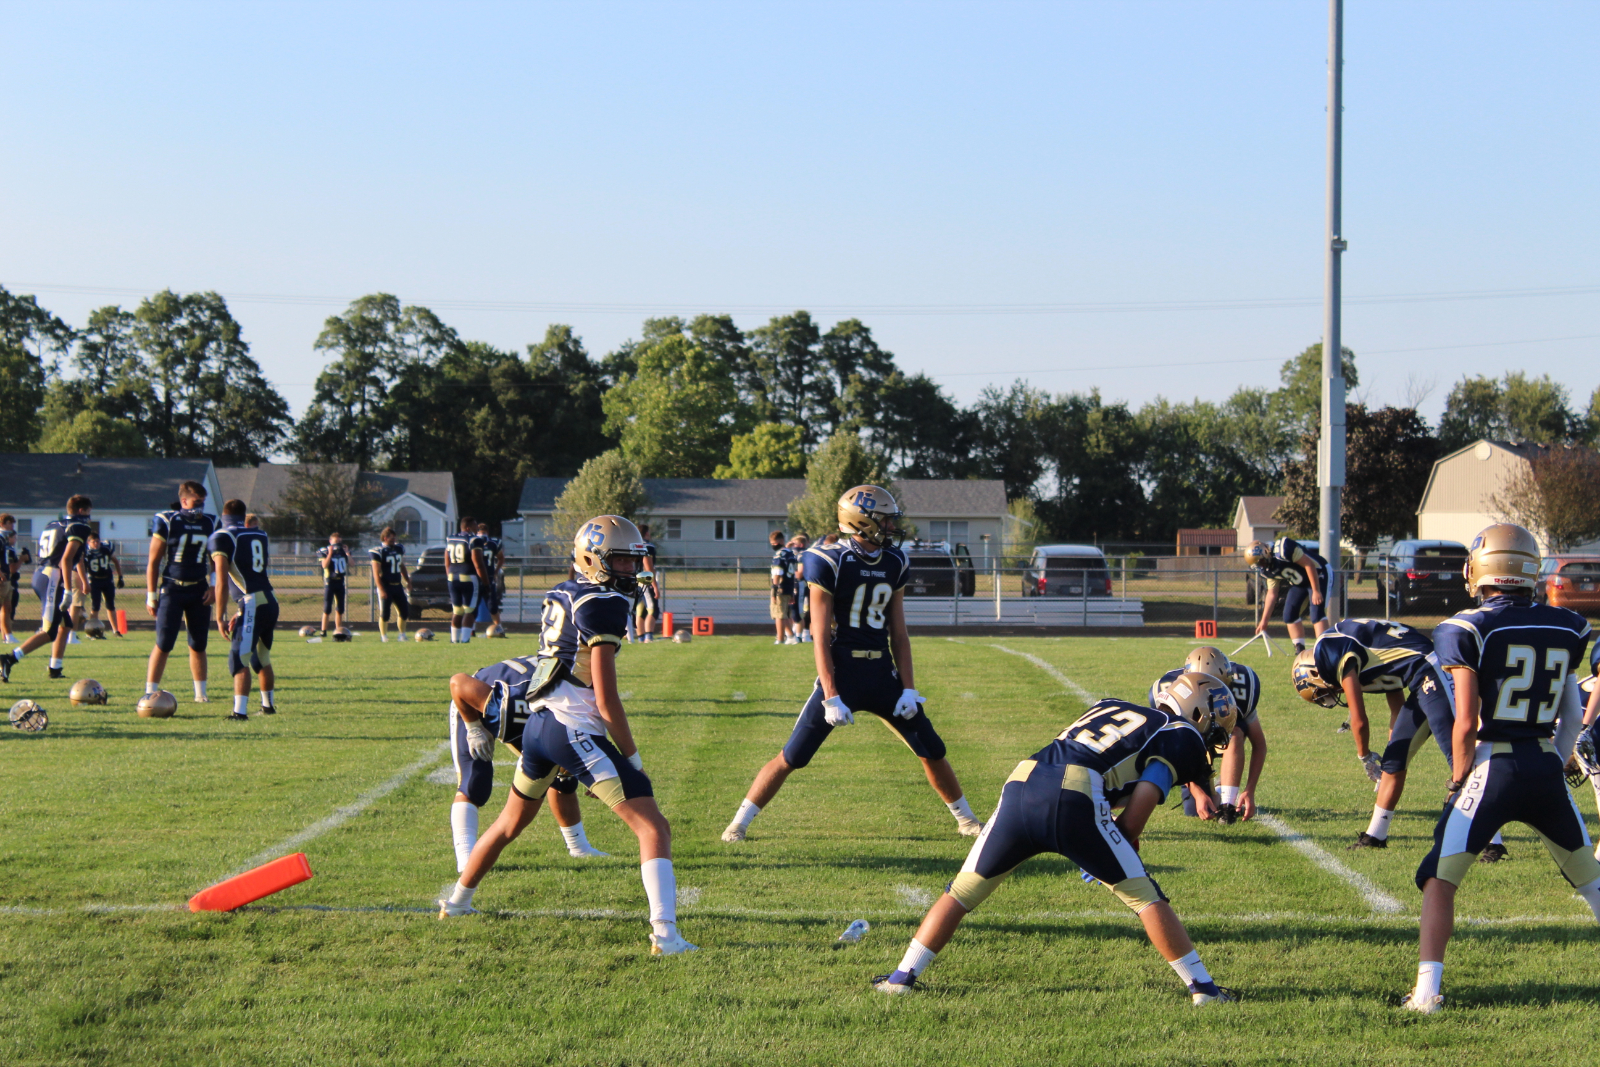 Varsity Football vs. La Porte 8/22/20  (Photo Gallery 2 of 4)